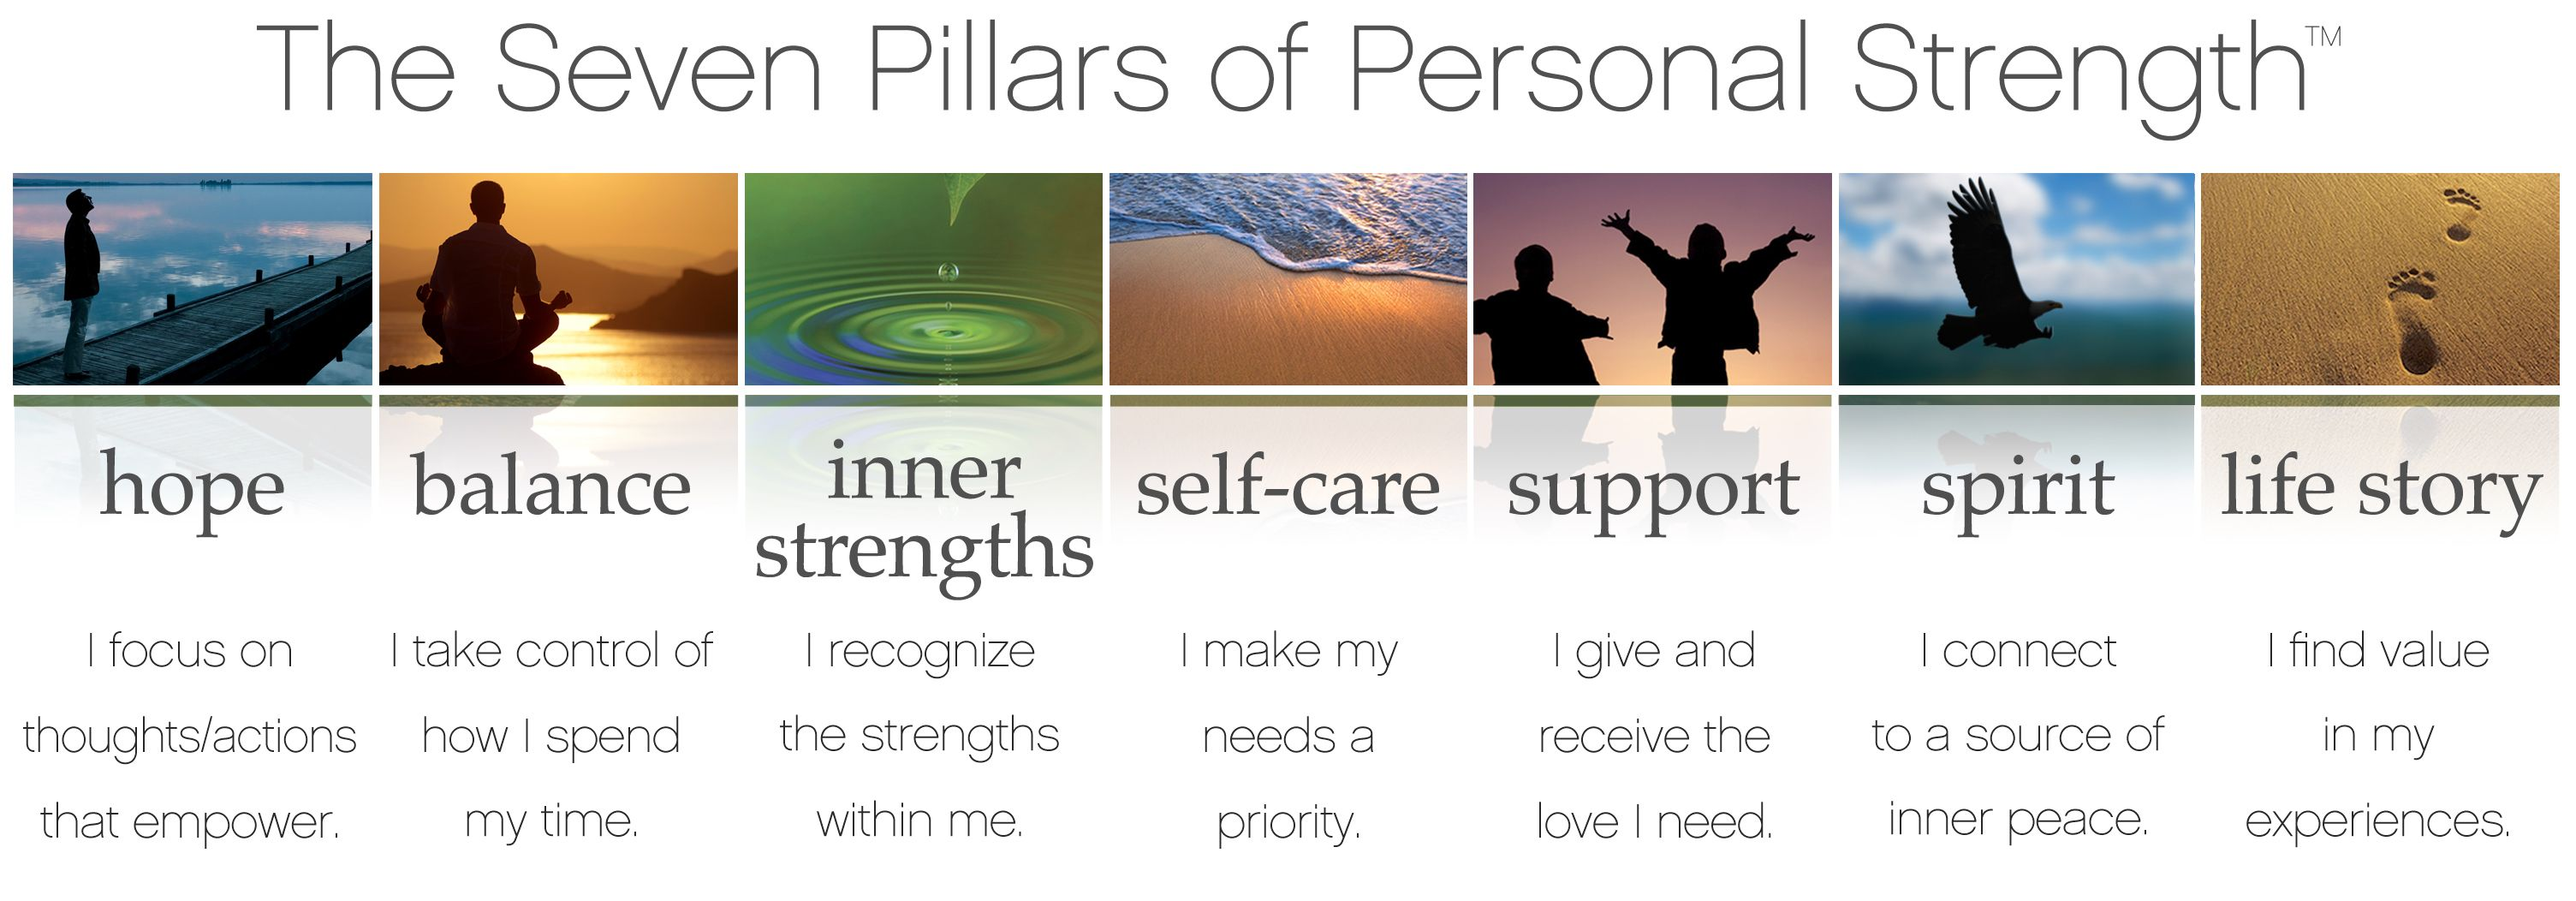 17 best images about the seven pillars of personal strength on 17 best images about the seven pillars of personal strength other your life and strength